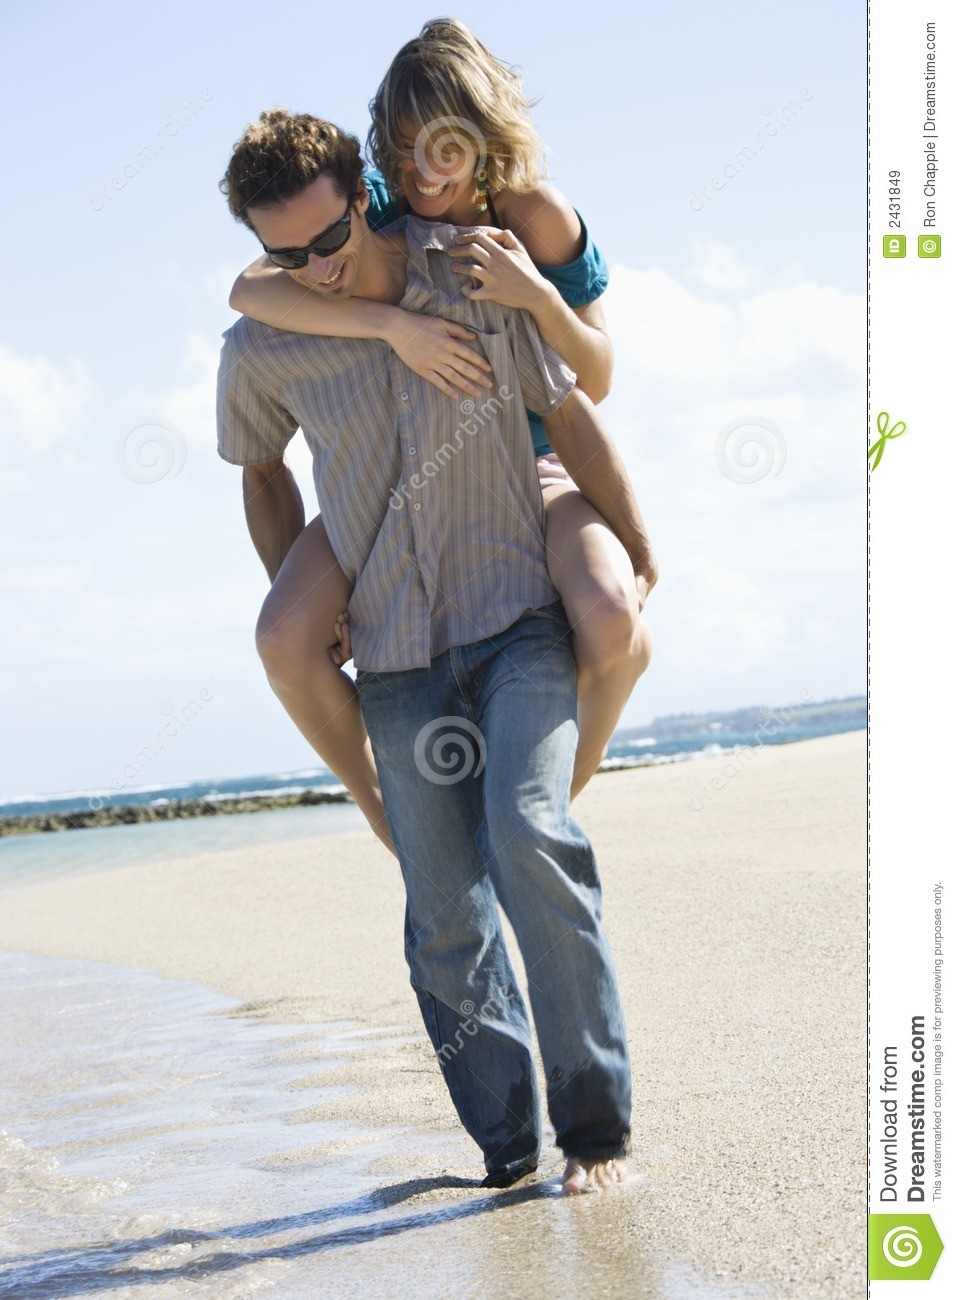 Man carrying woman royalty free stock images image 2431849